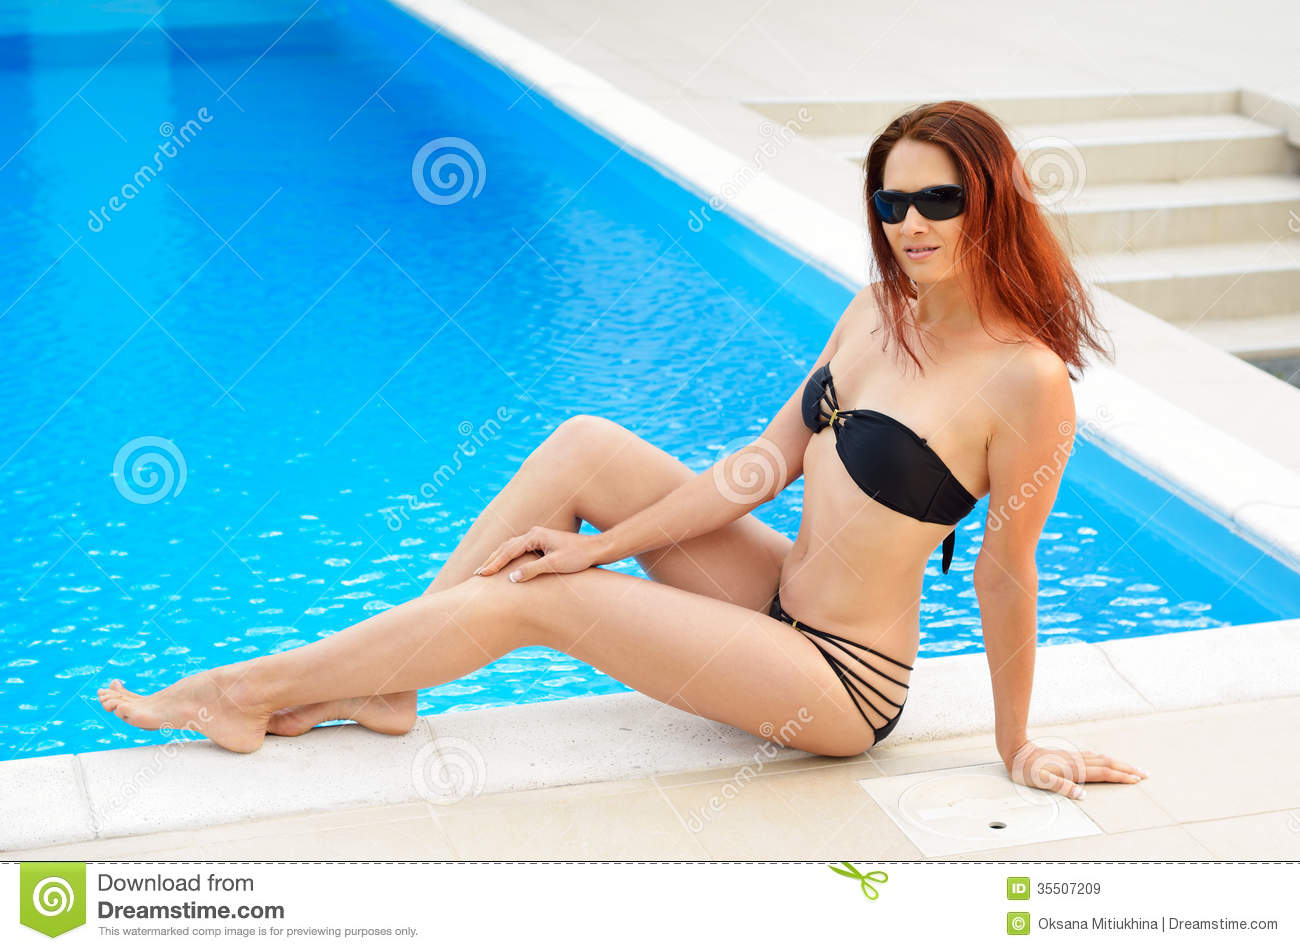 Woman Tanning Near The Home Pool Stock Image Image Of Outdoor Water 35507209